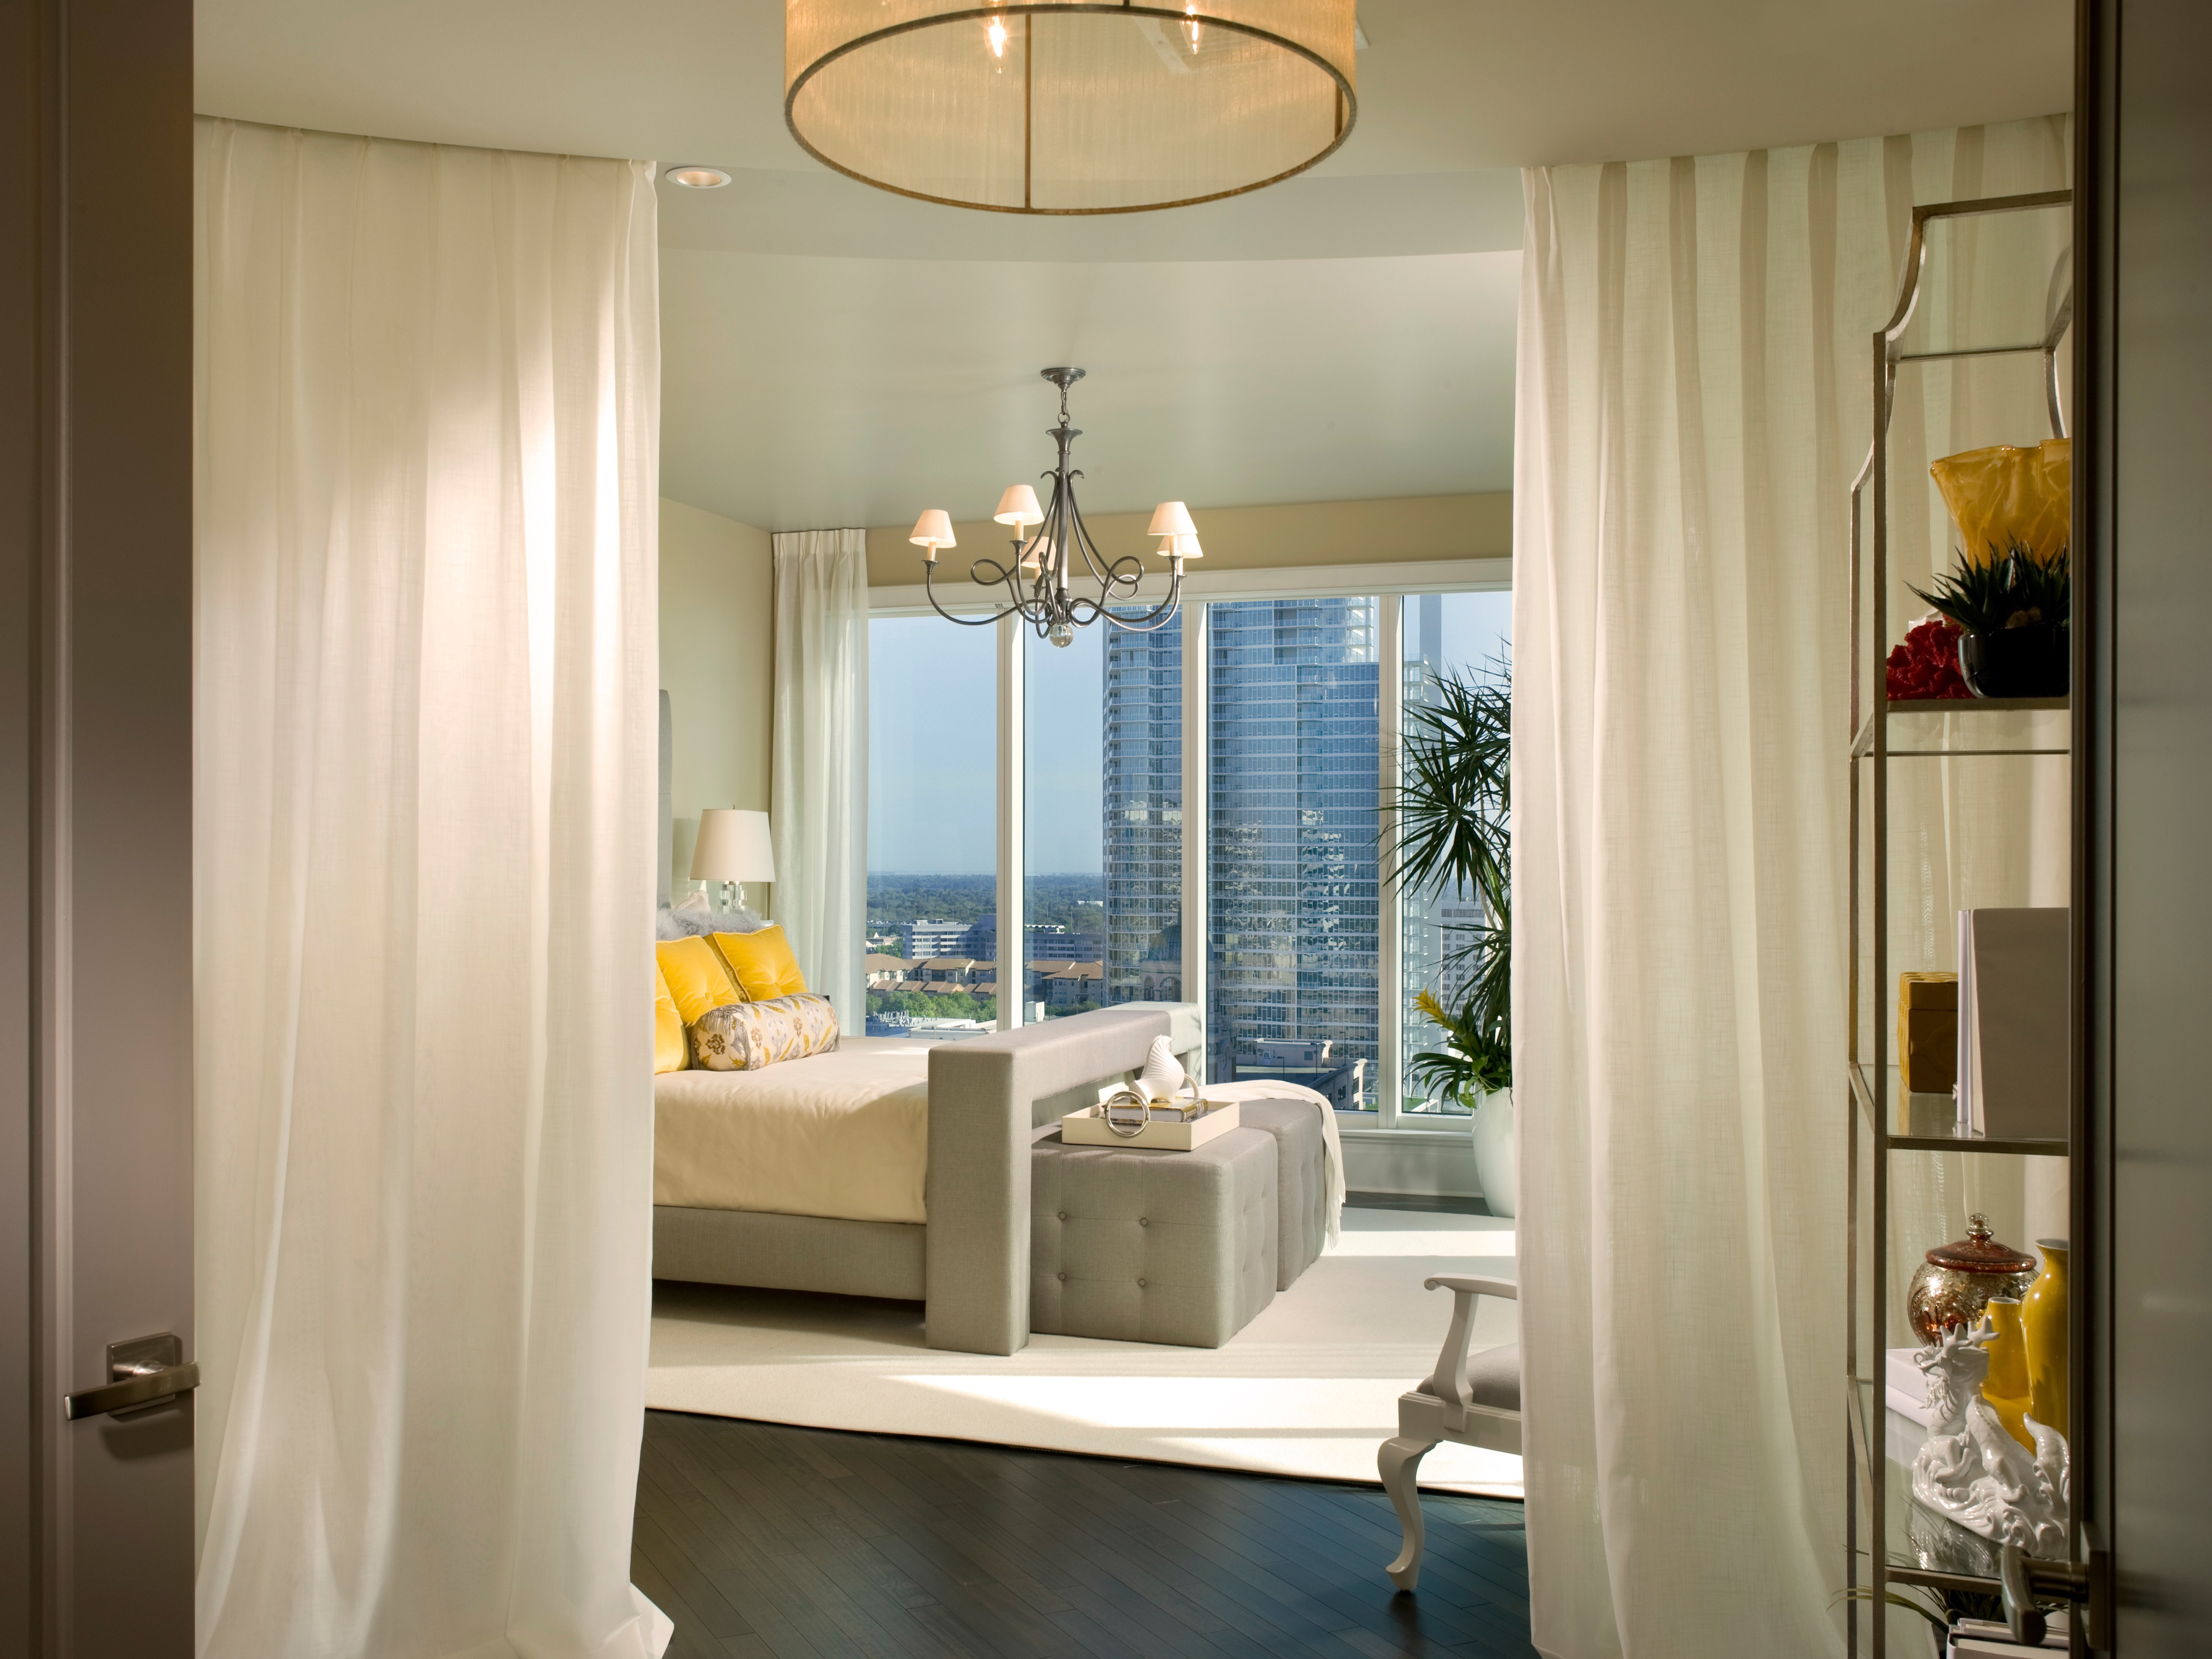 Modern Apartment Bedroom With Bedroom With Curtain Room Divider (Image 8 of 14)